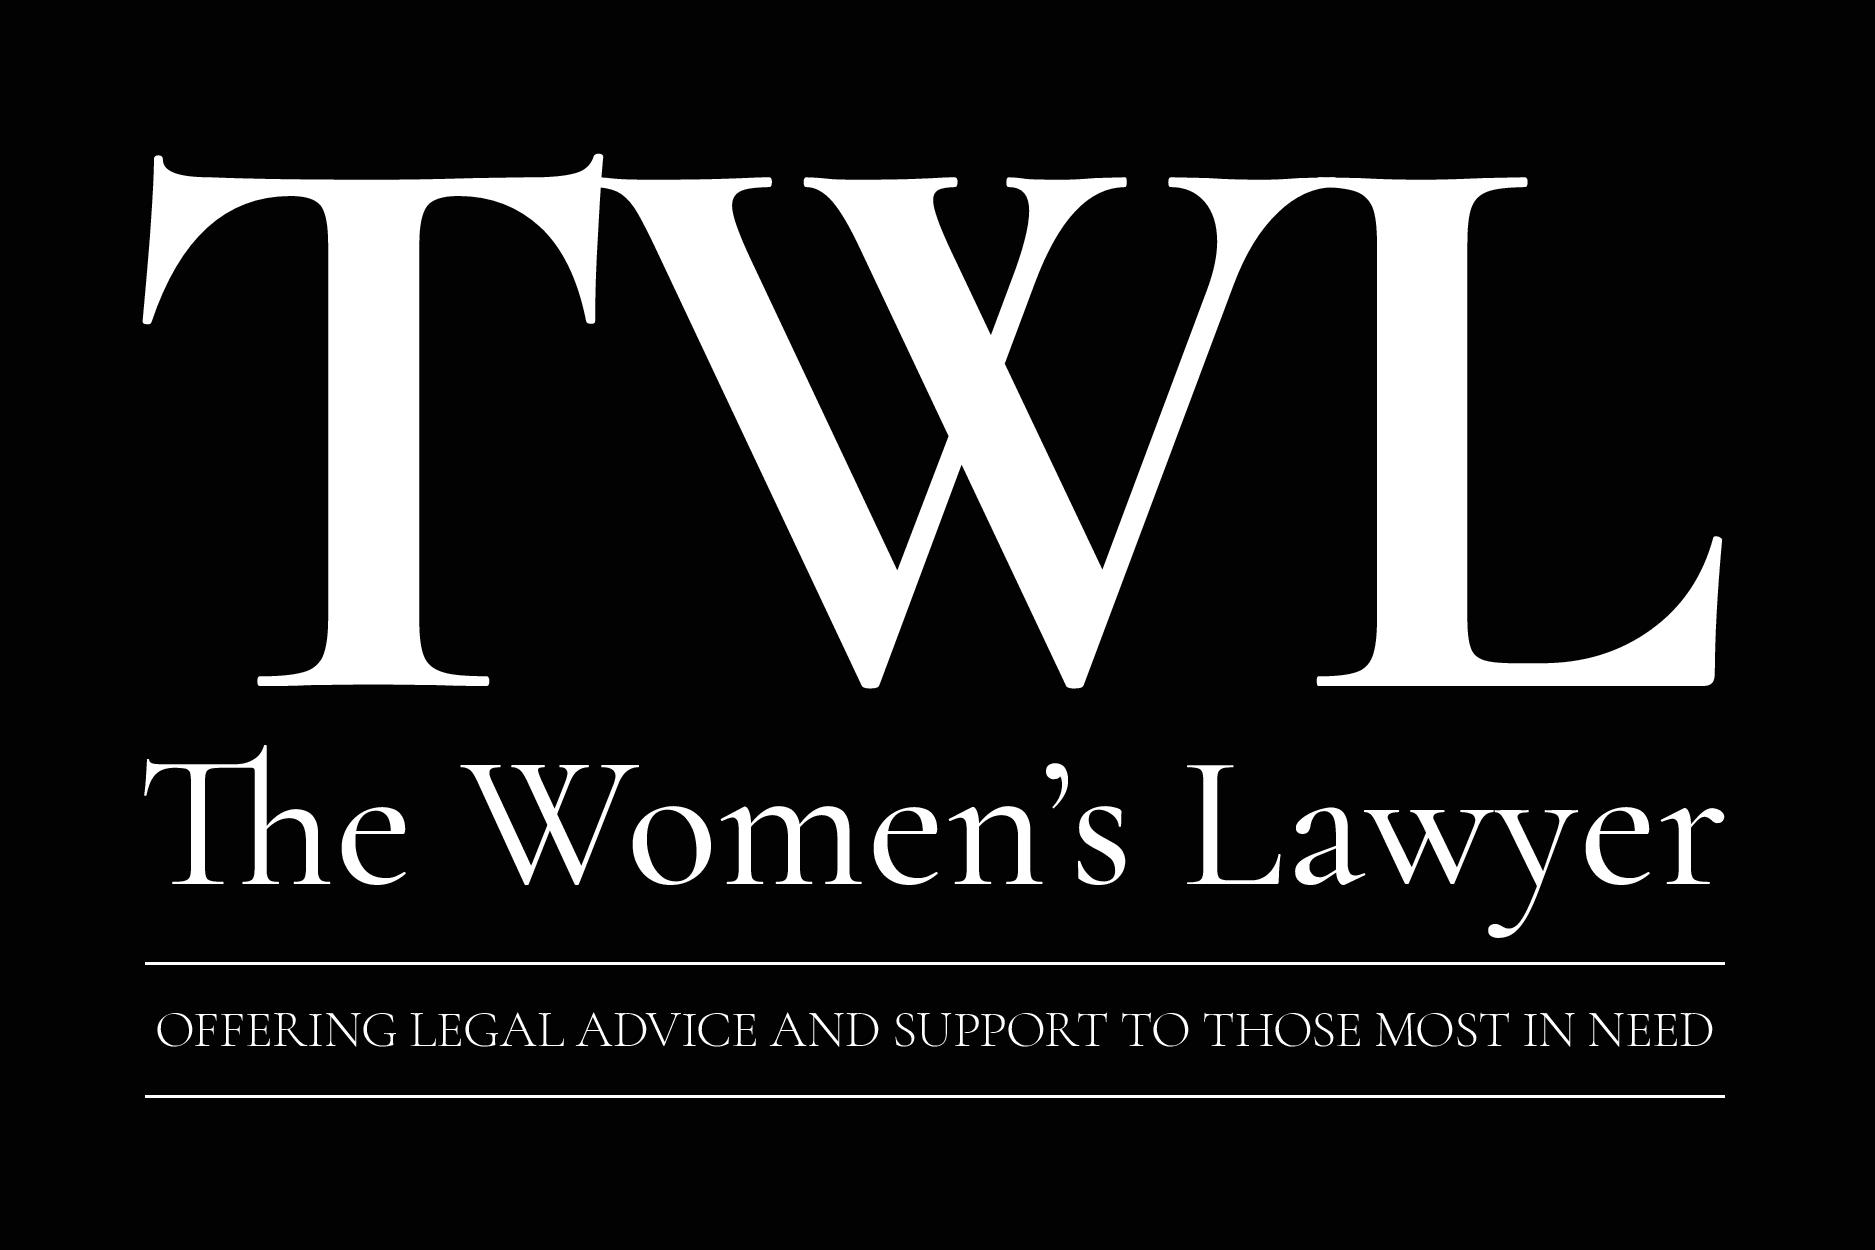 The Women's Lawyer